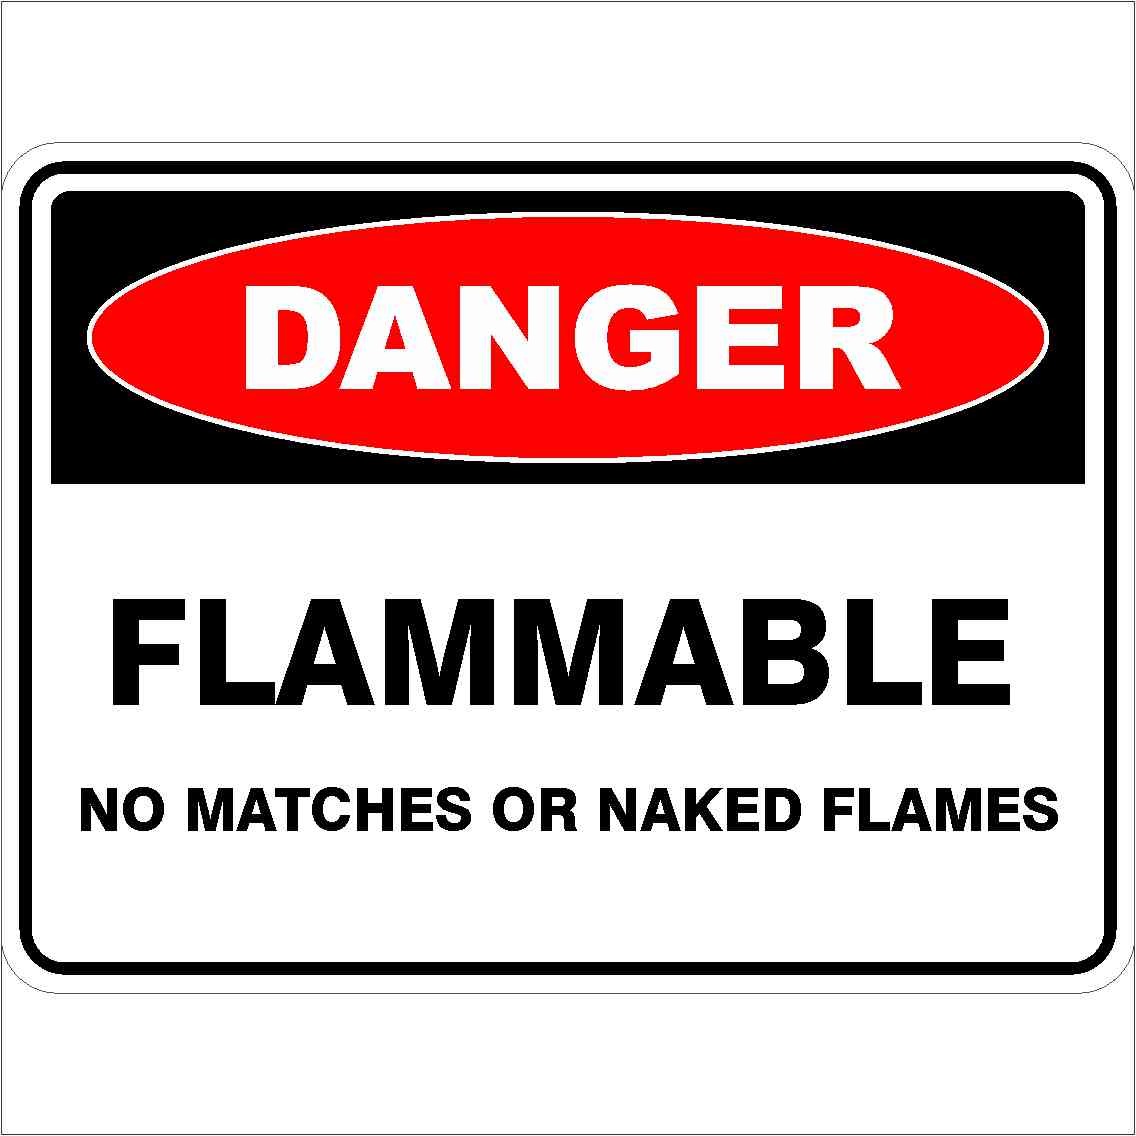 Danger Signs FLAMMABLE NO MATCHED OR NAKED FLAMES